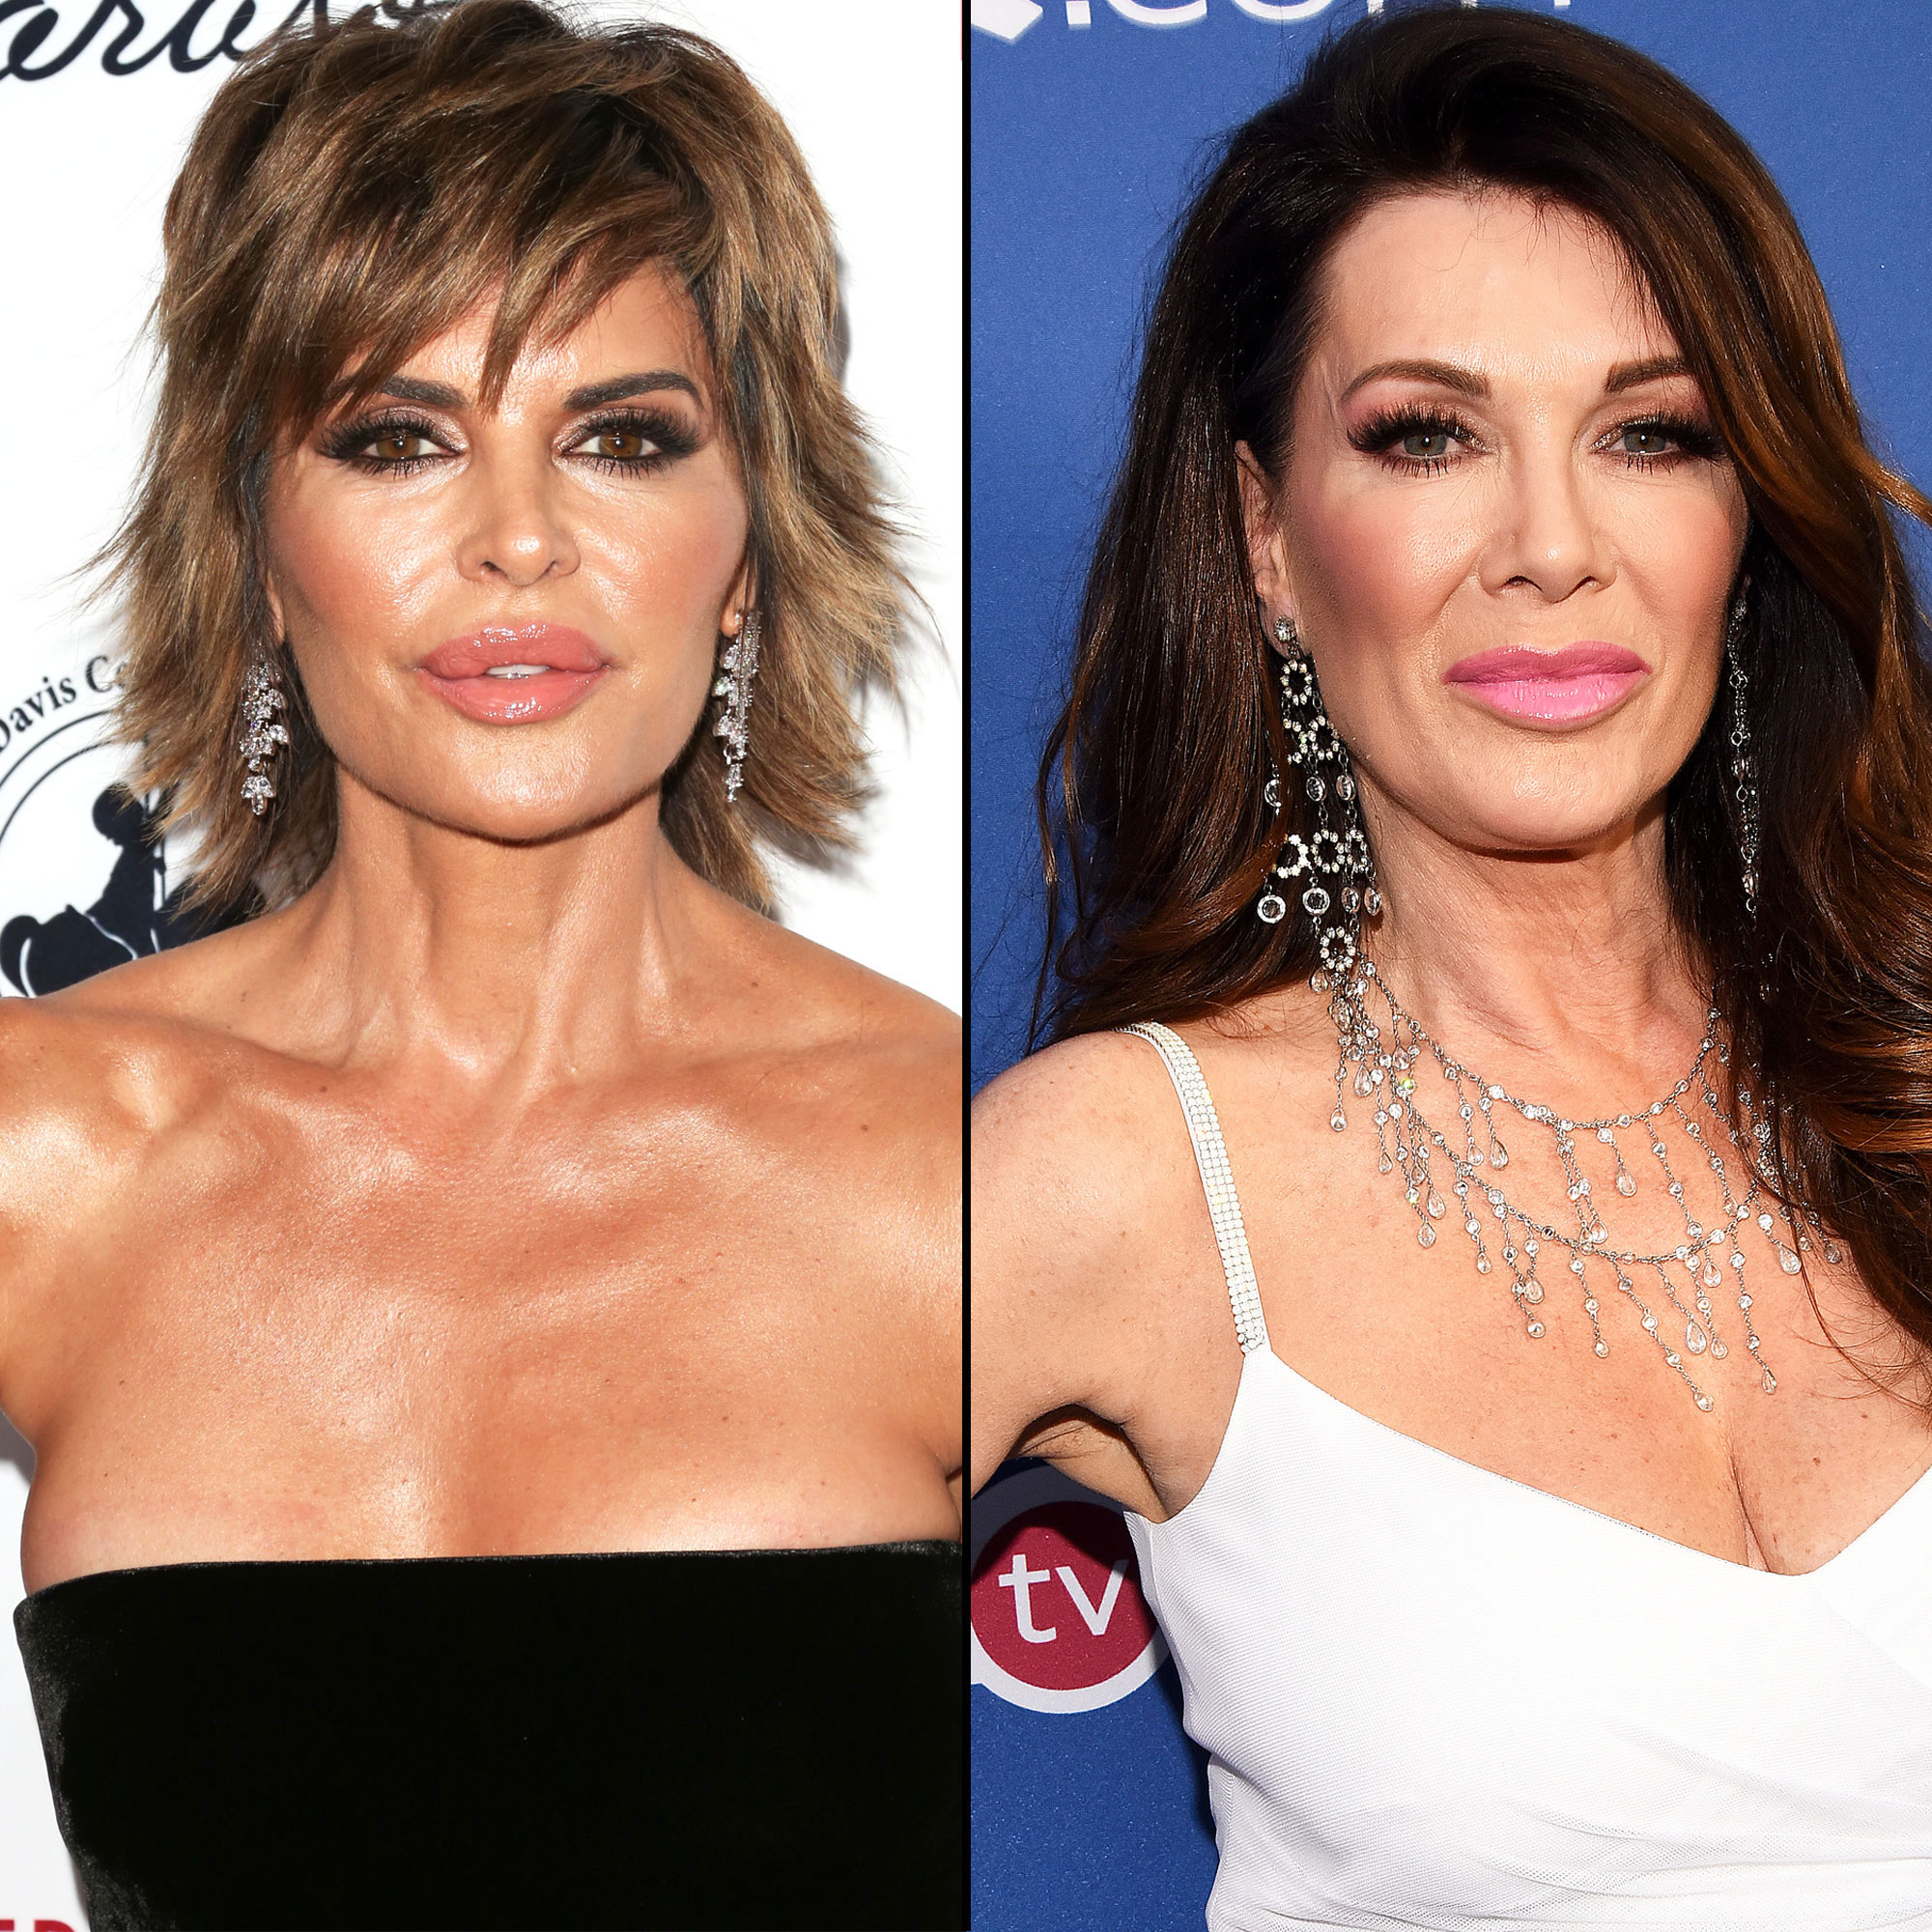 Lisa Rinna's Most Savage Comebacks - BEVERLY HILLS, CA – OCTOBER 06: Actress Lisa Rinna attends the 2018 Carousel Of Hope Ball at The Beverly Hilton Hotel on October 6, 2018 in Beverly Hills, California. (Photo by Paul Archuleta/FilmMagic,)